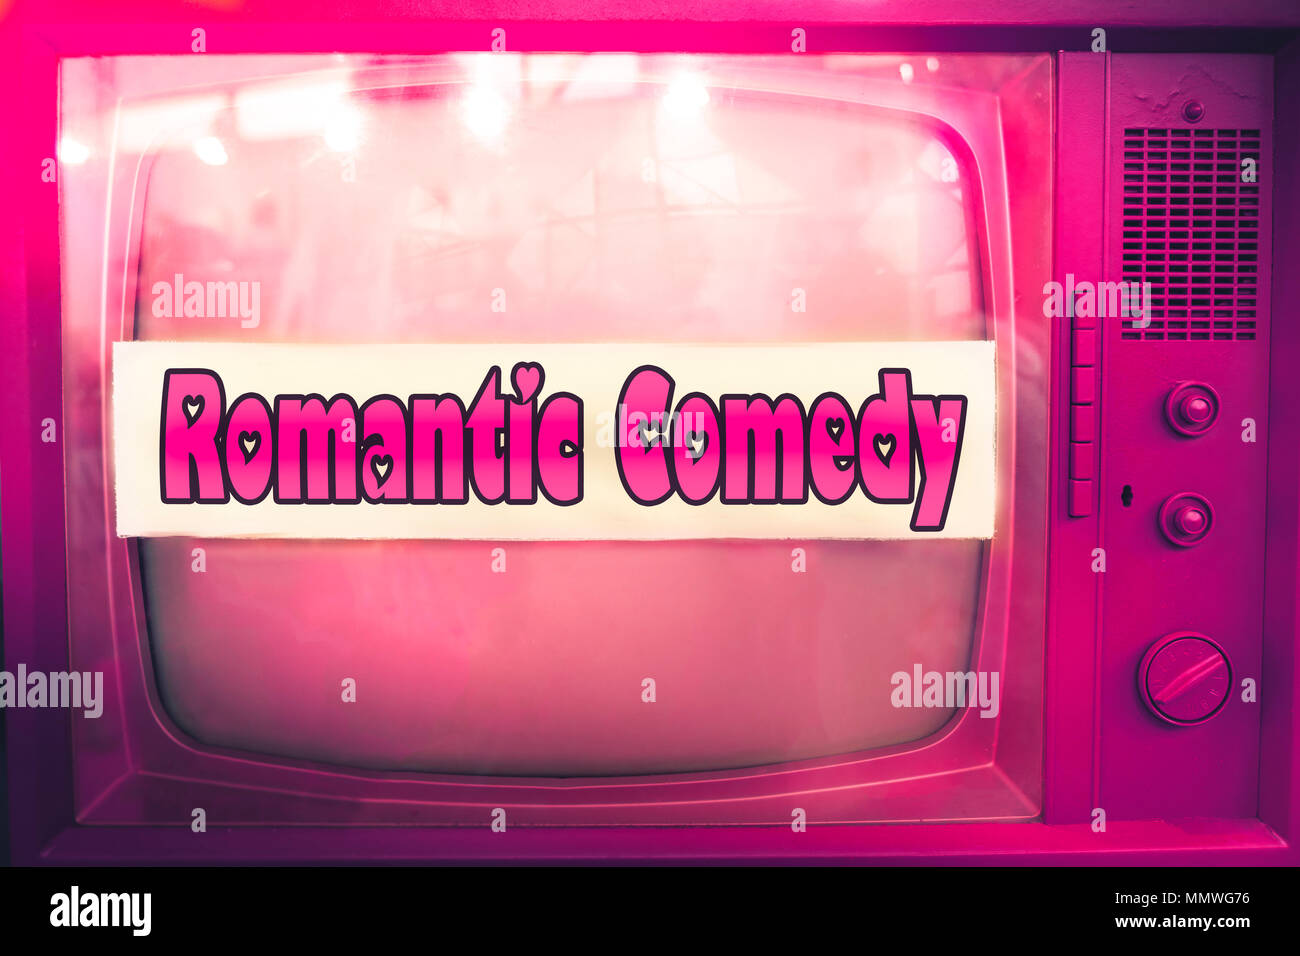 romantic comedy pink tv film genre purple television label old tv text vintage retro romance movie background - Stock Image